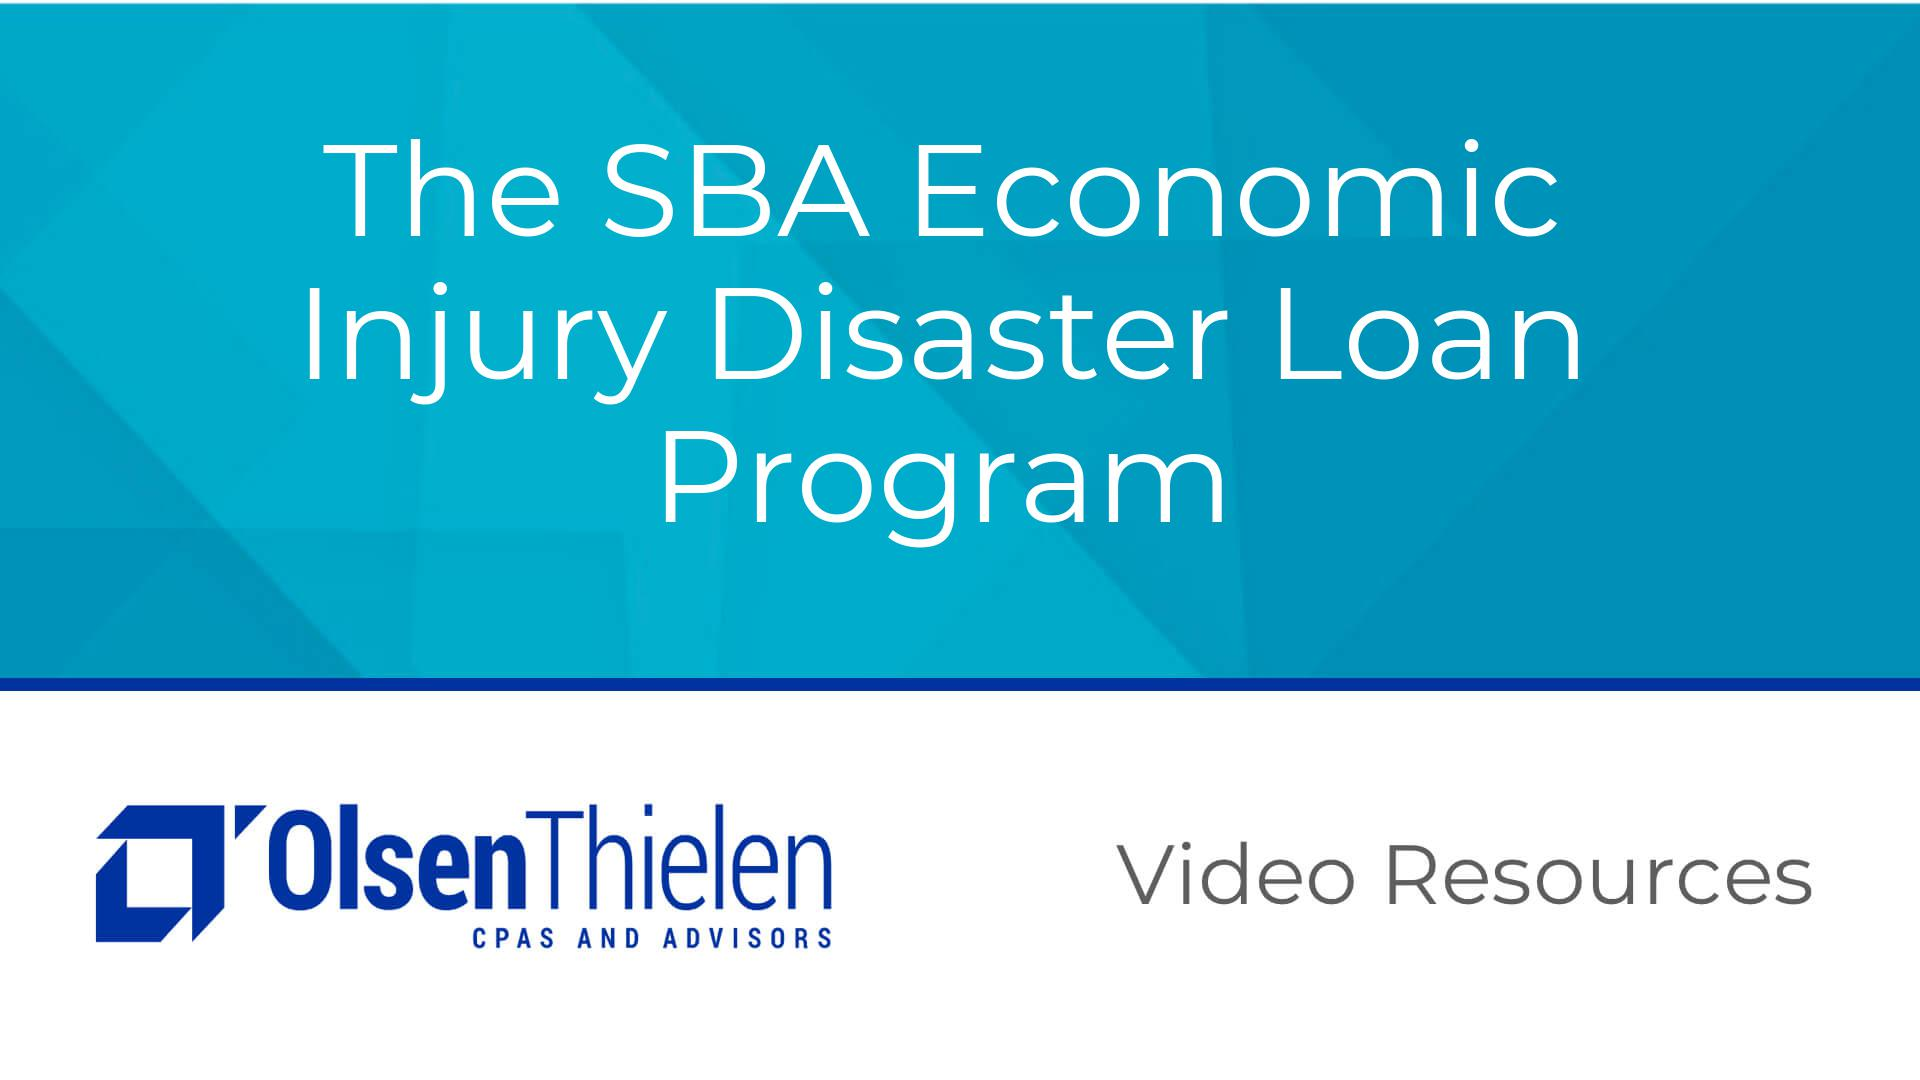 SBA Economic Injury Disaster Loan Program